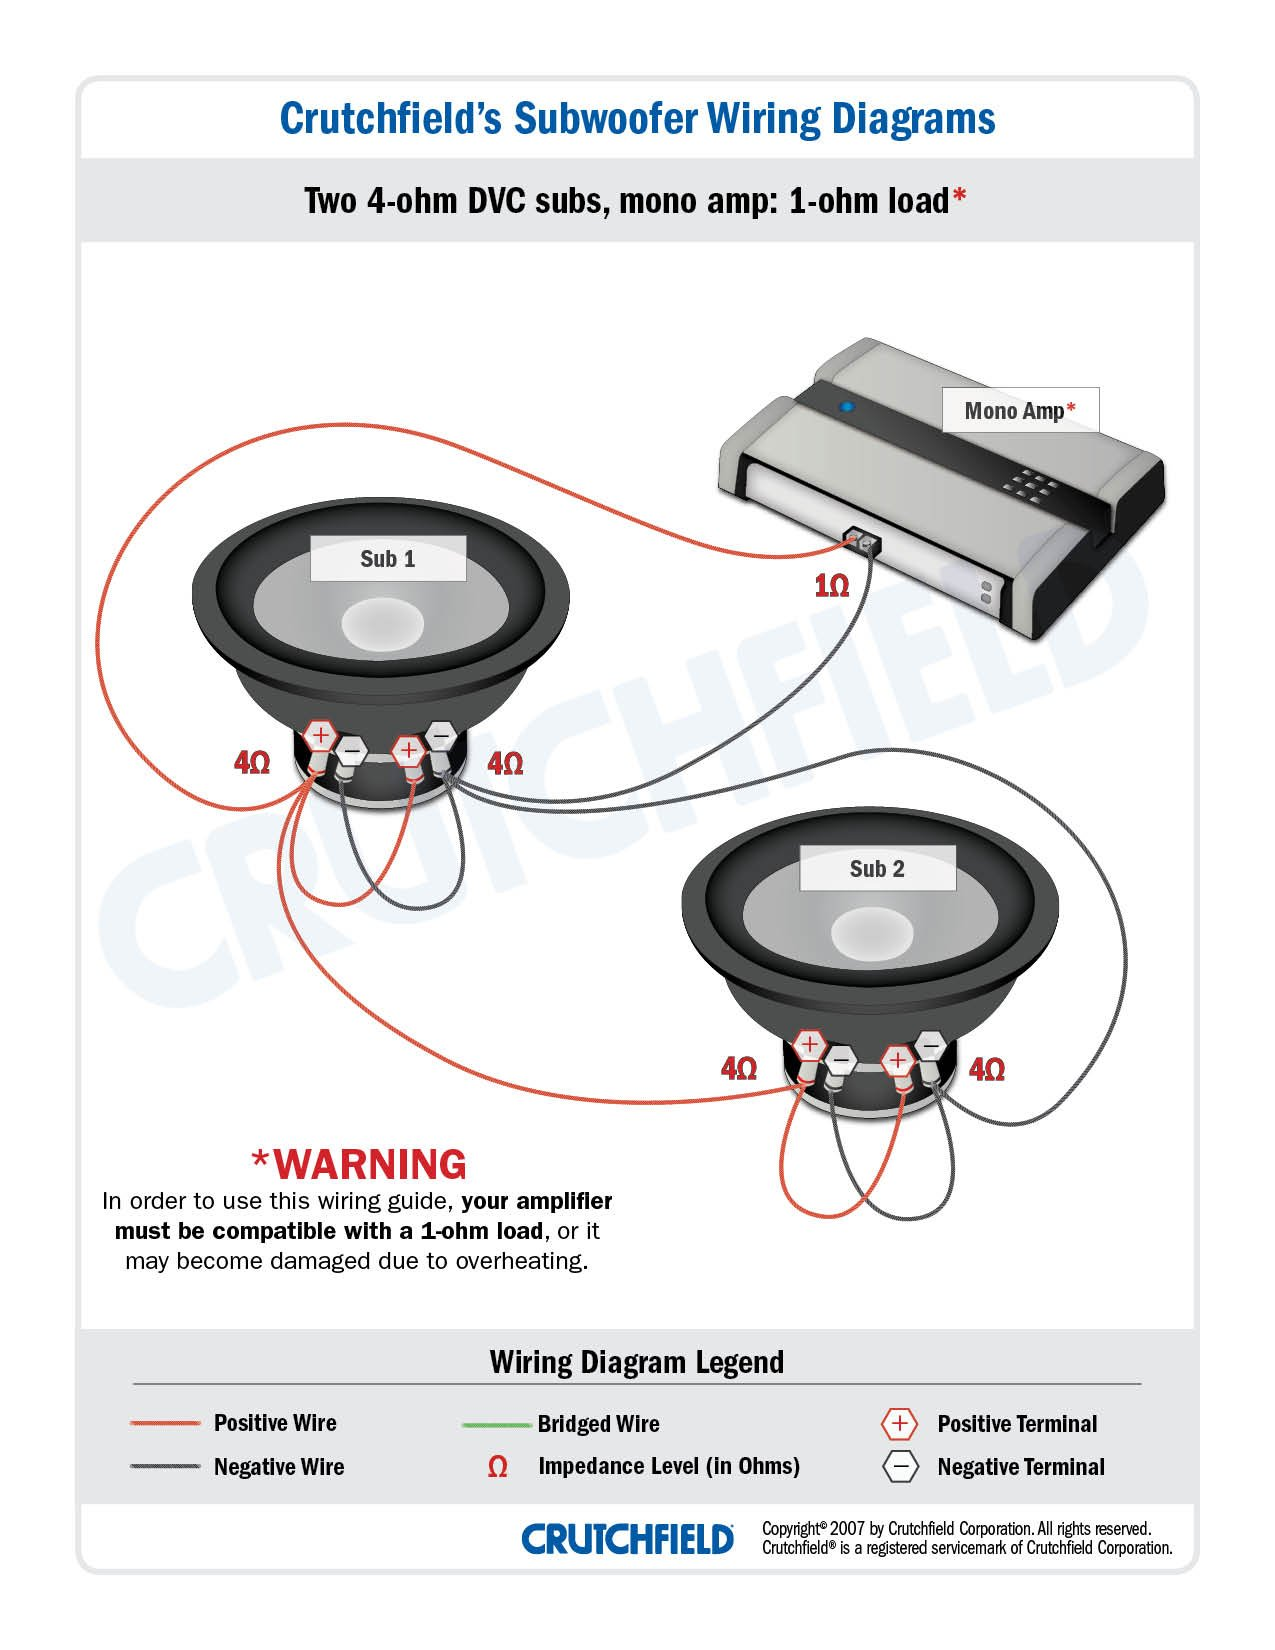 Subwoofer Wiring Diagrams How To Wire Your Subs Multiple Electrical Schematic Diagram This